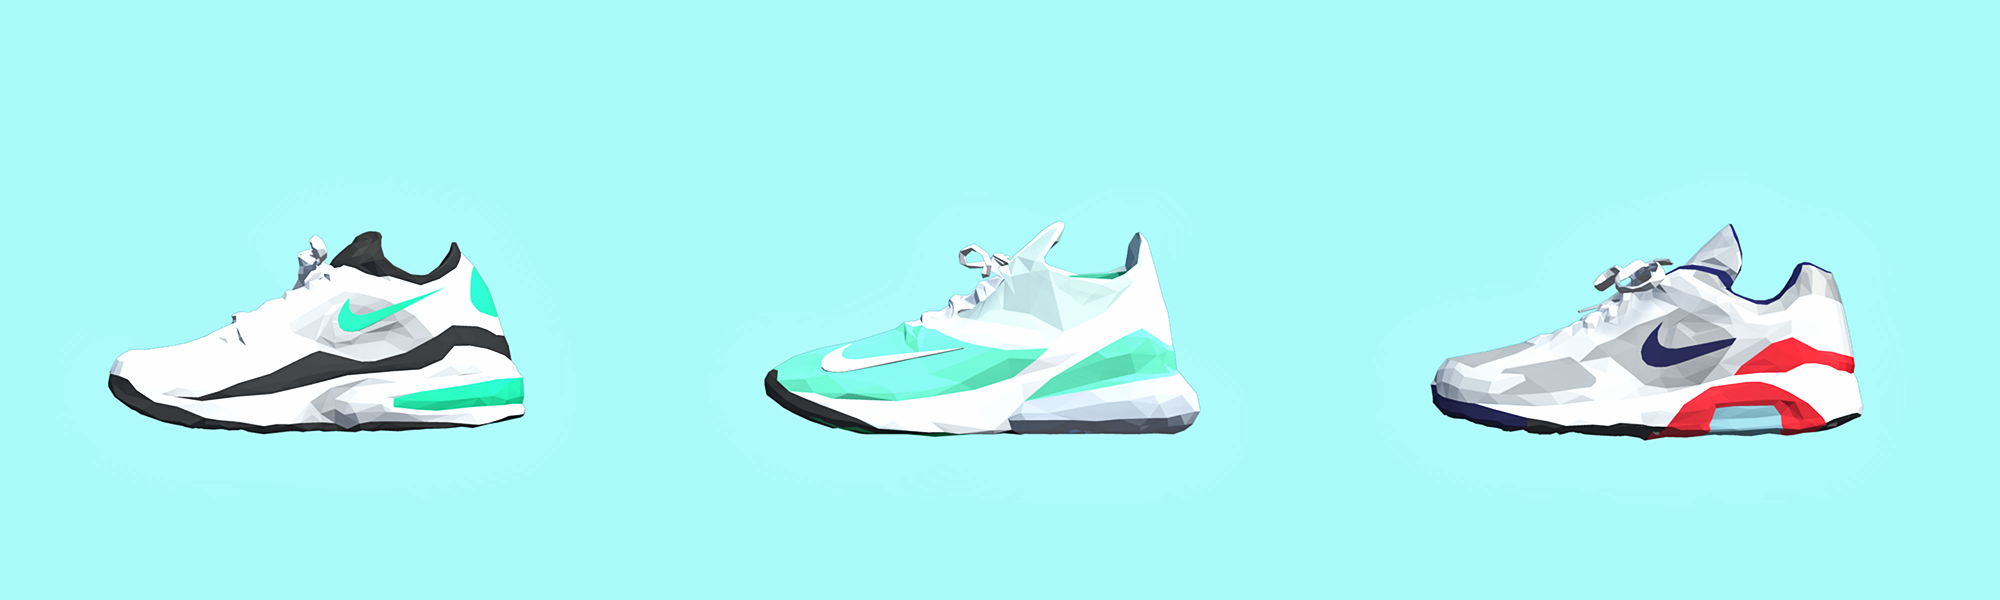 Nike Air Max Low Poly 3D models